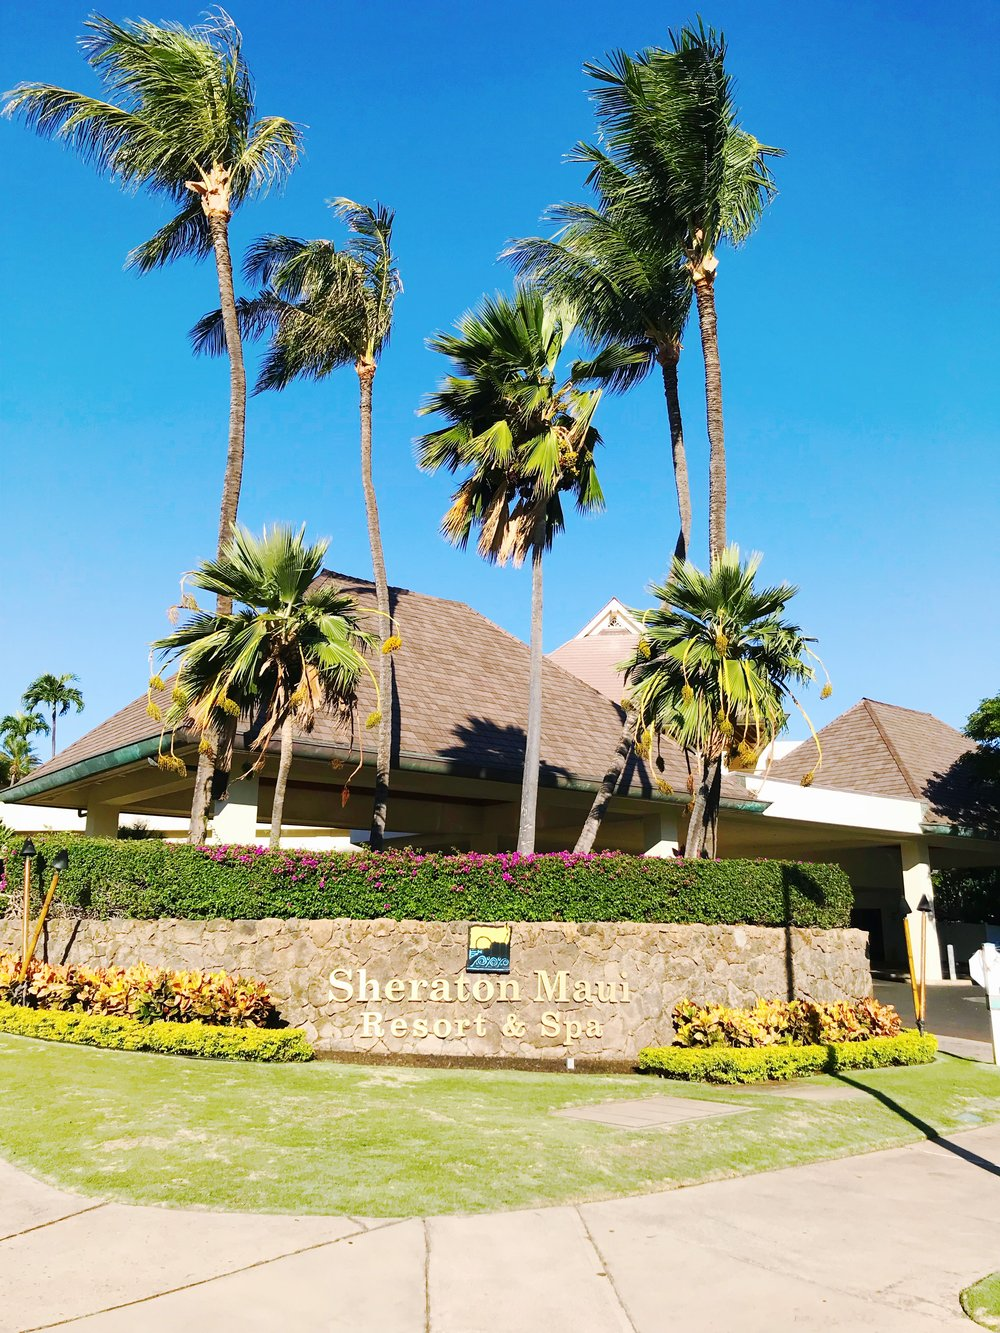 Welcome to the Sheraton Maui Resort